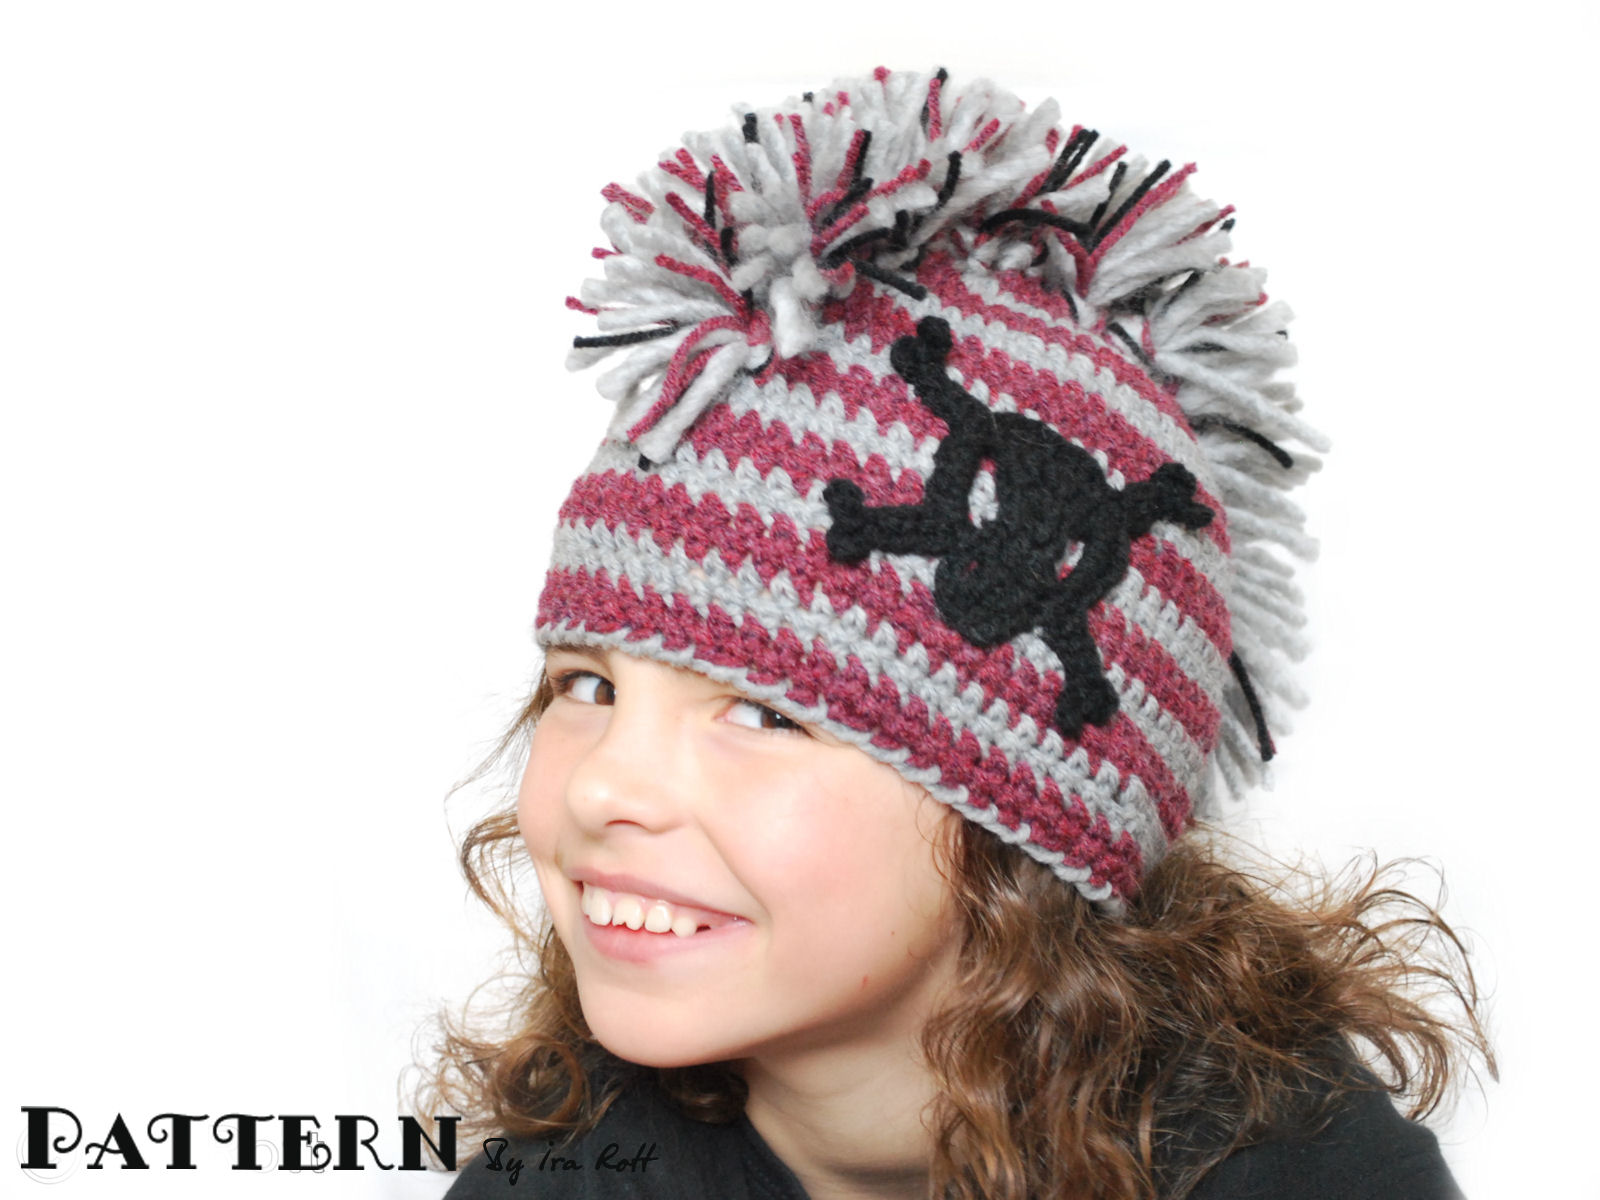 Skull and Crossbones Pirate Beanie Hat with Mohawk - Crochet Pattern 7f246e2ff7f